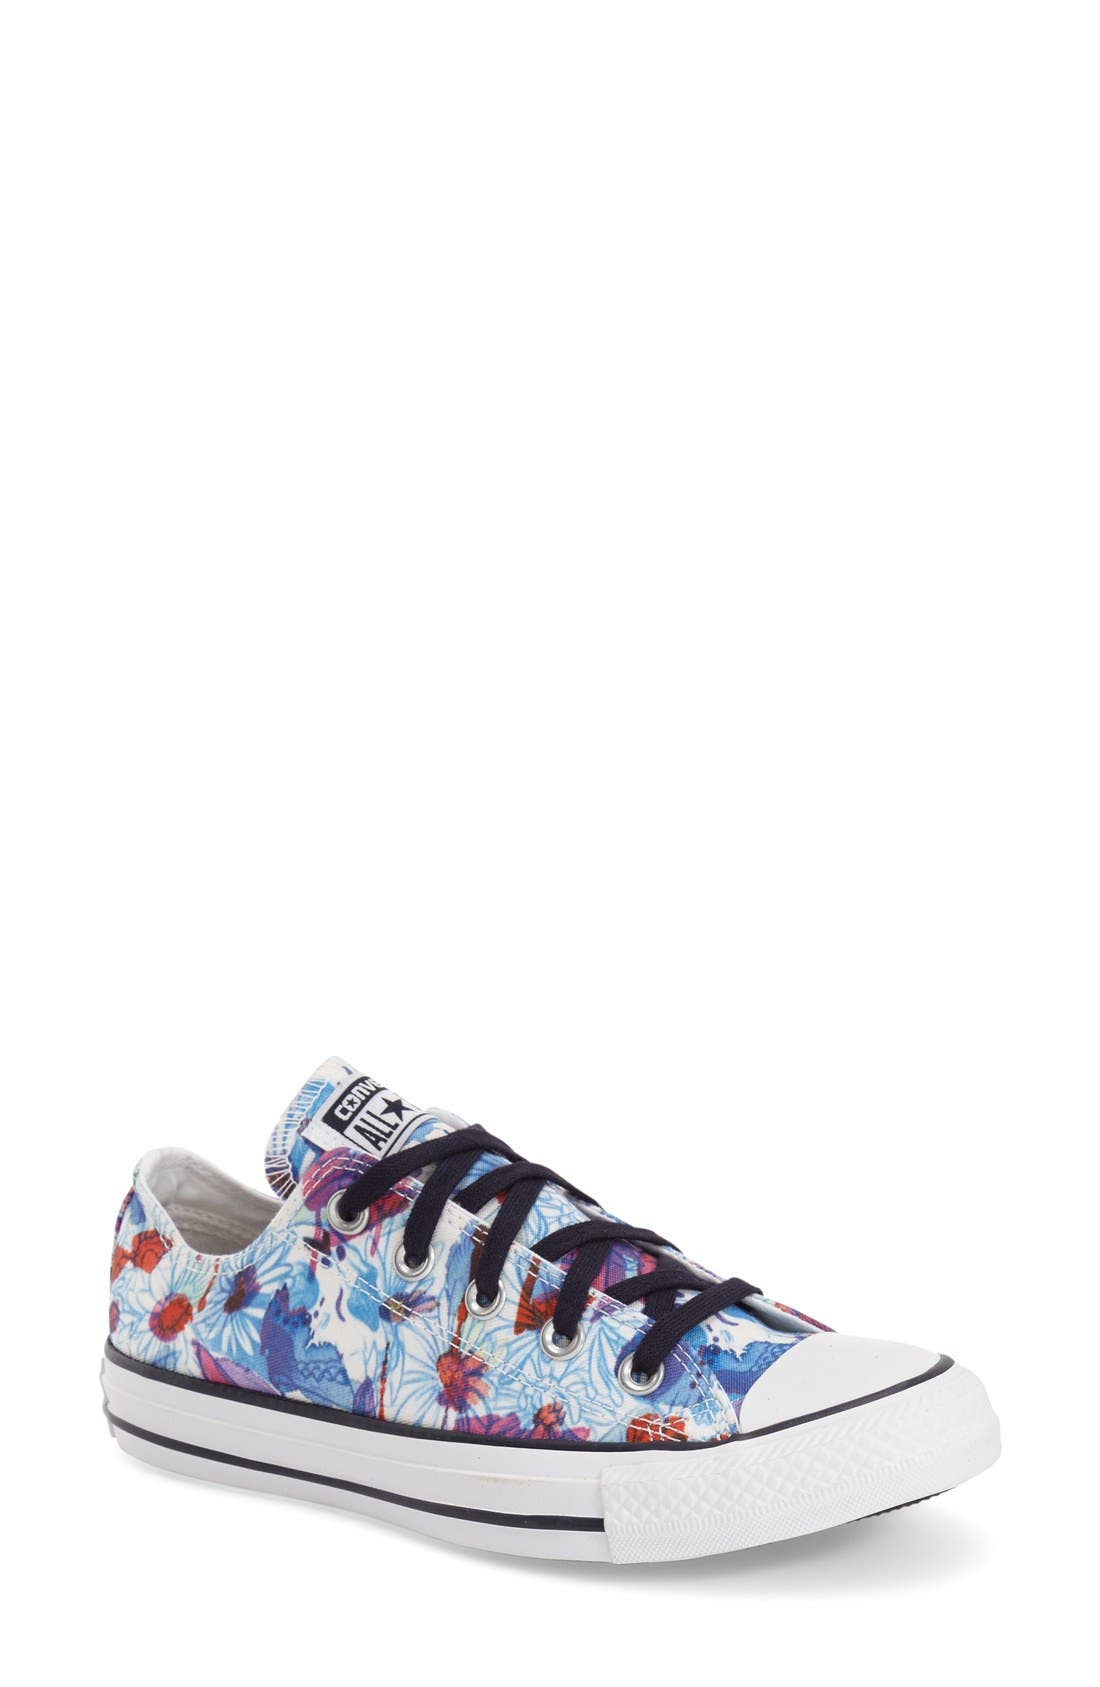 Chuck Taylor<sup>®</sup> All Star<sup>®</sup> 'Daisy Print Ox' Low Top Sneaker,                             Main thumbnail 1, color,                             400